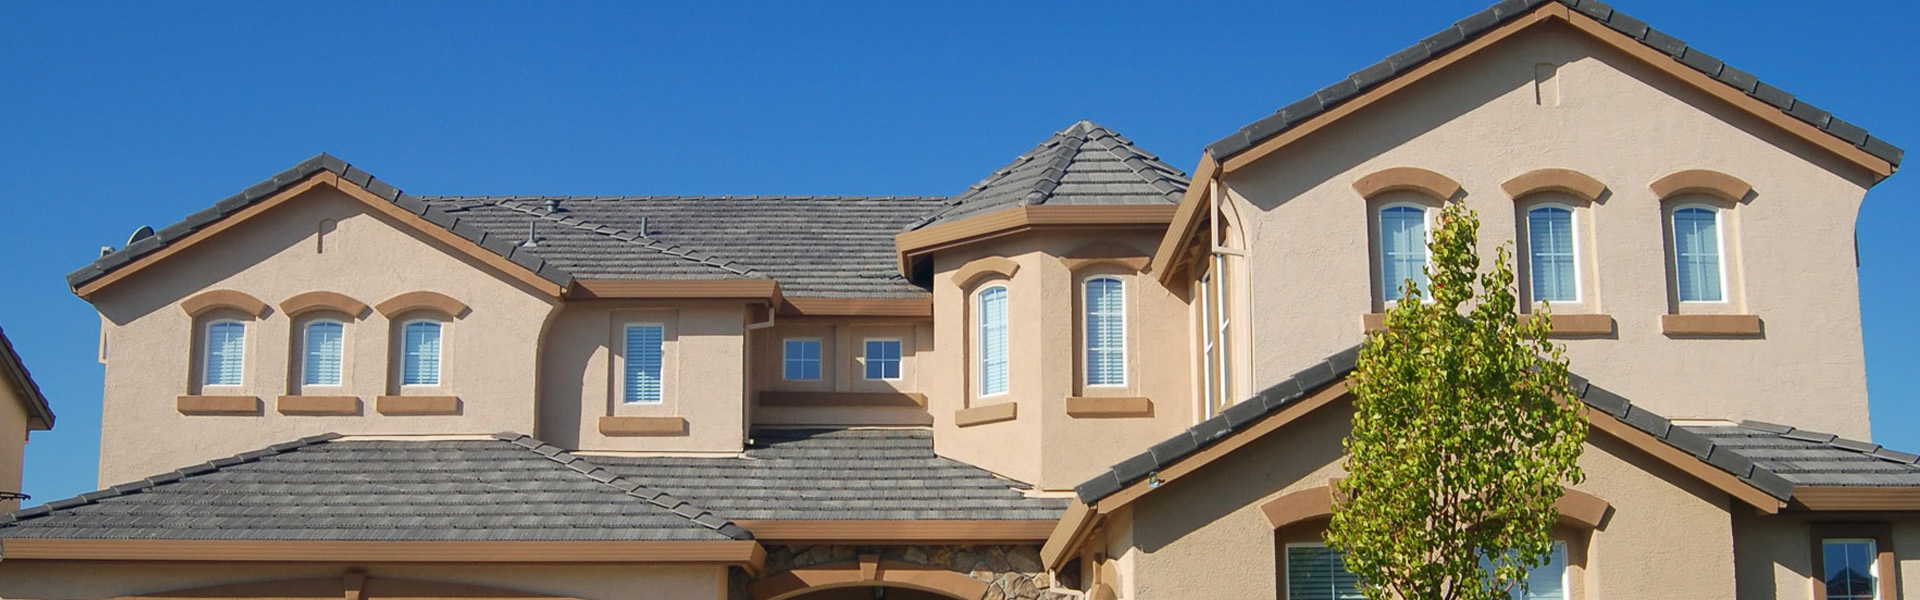 WE ALSO PERFORM ROOFING, ROOF REPAIRS AND ROOF REPLACEMENT FOR RESIDENTIAL HOMES, APARTMENTS AND CONDOS